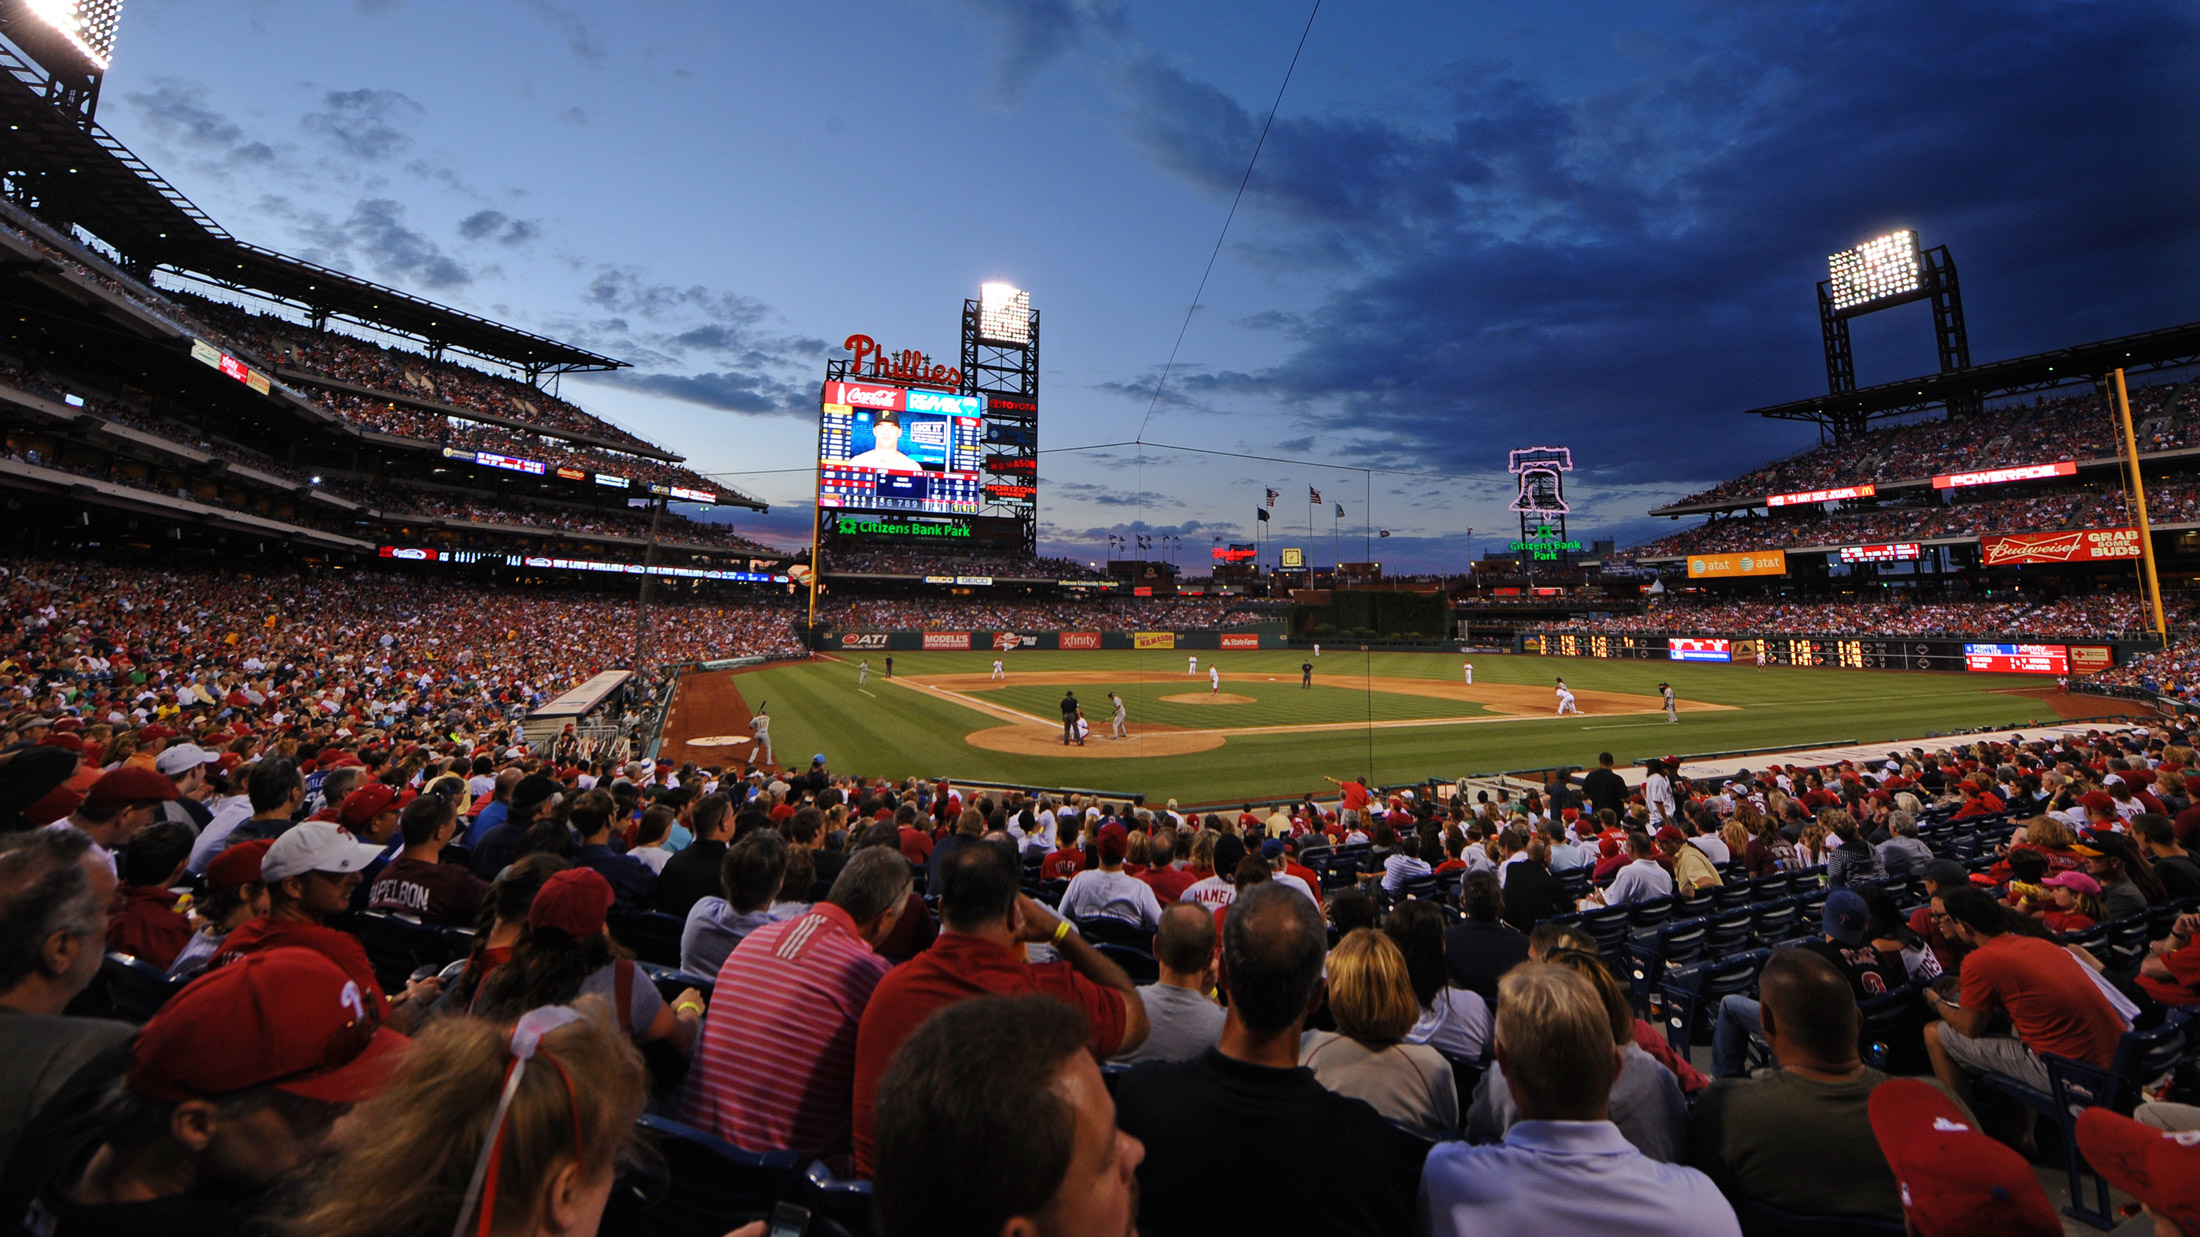 A Phillies game at Citizens Bank Park at dusk